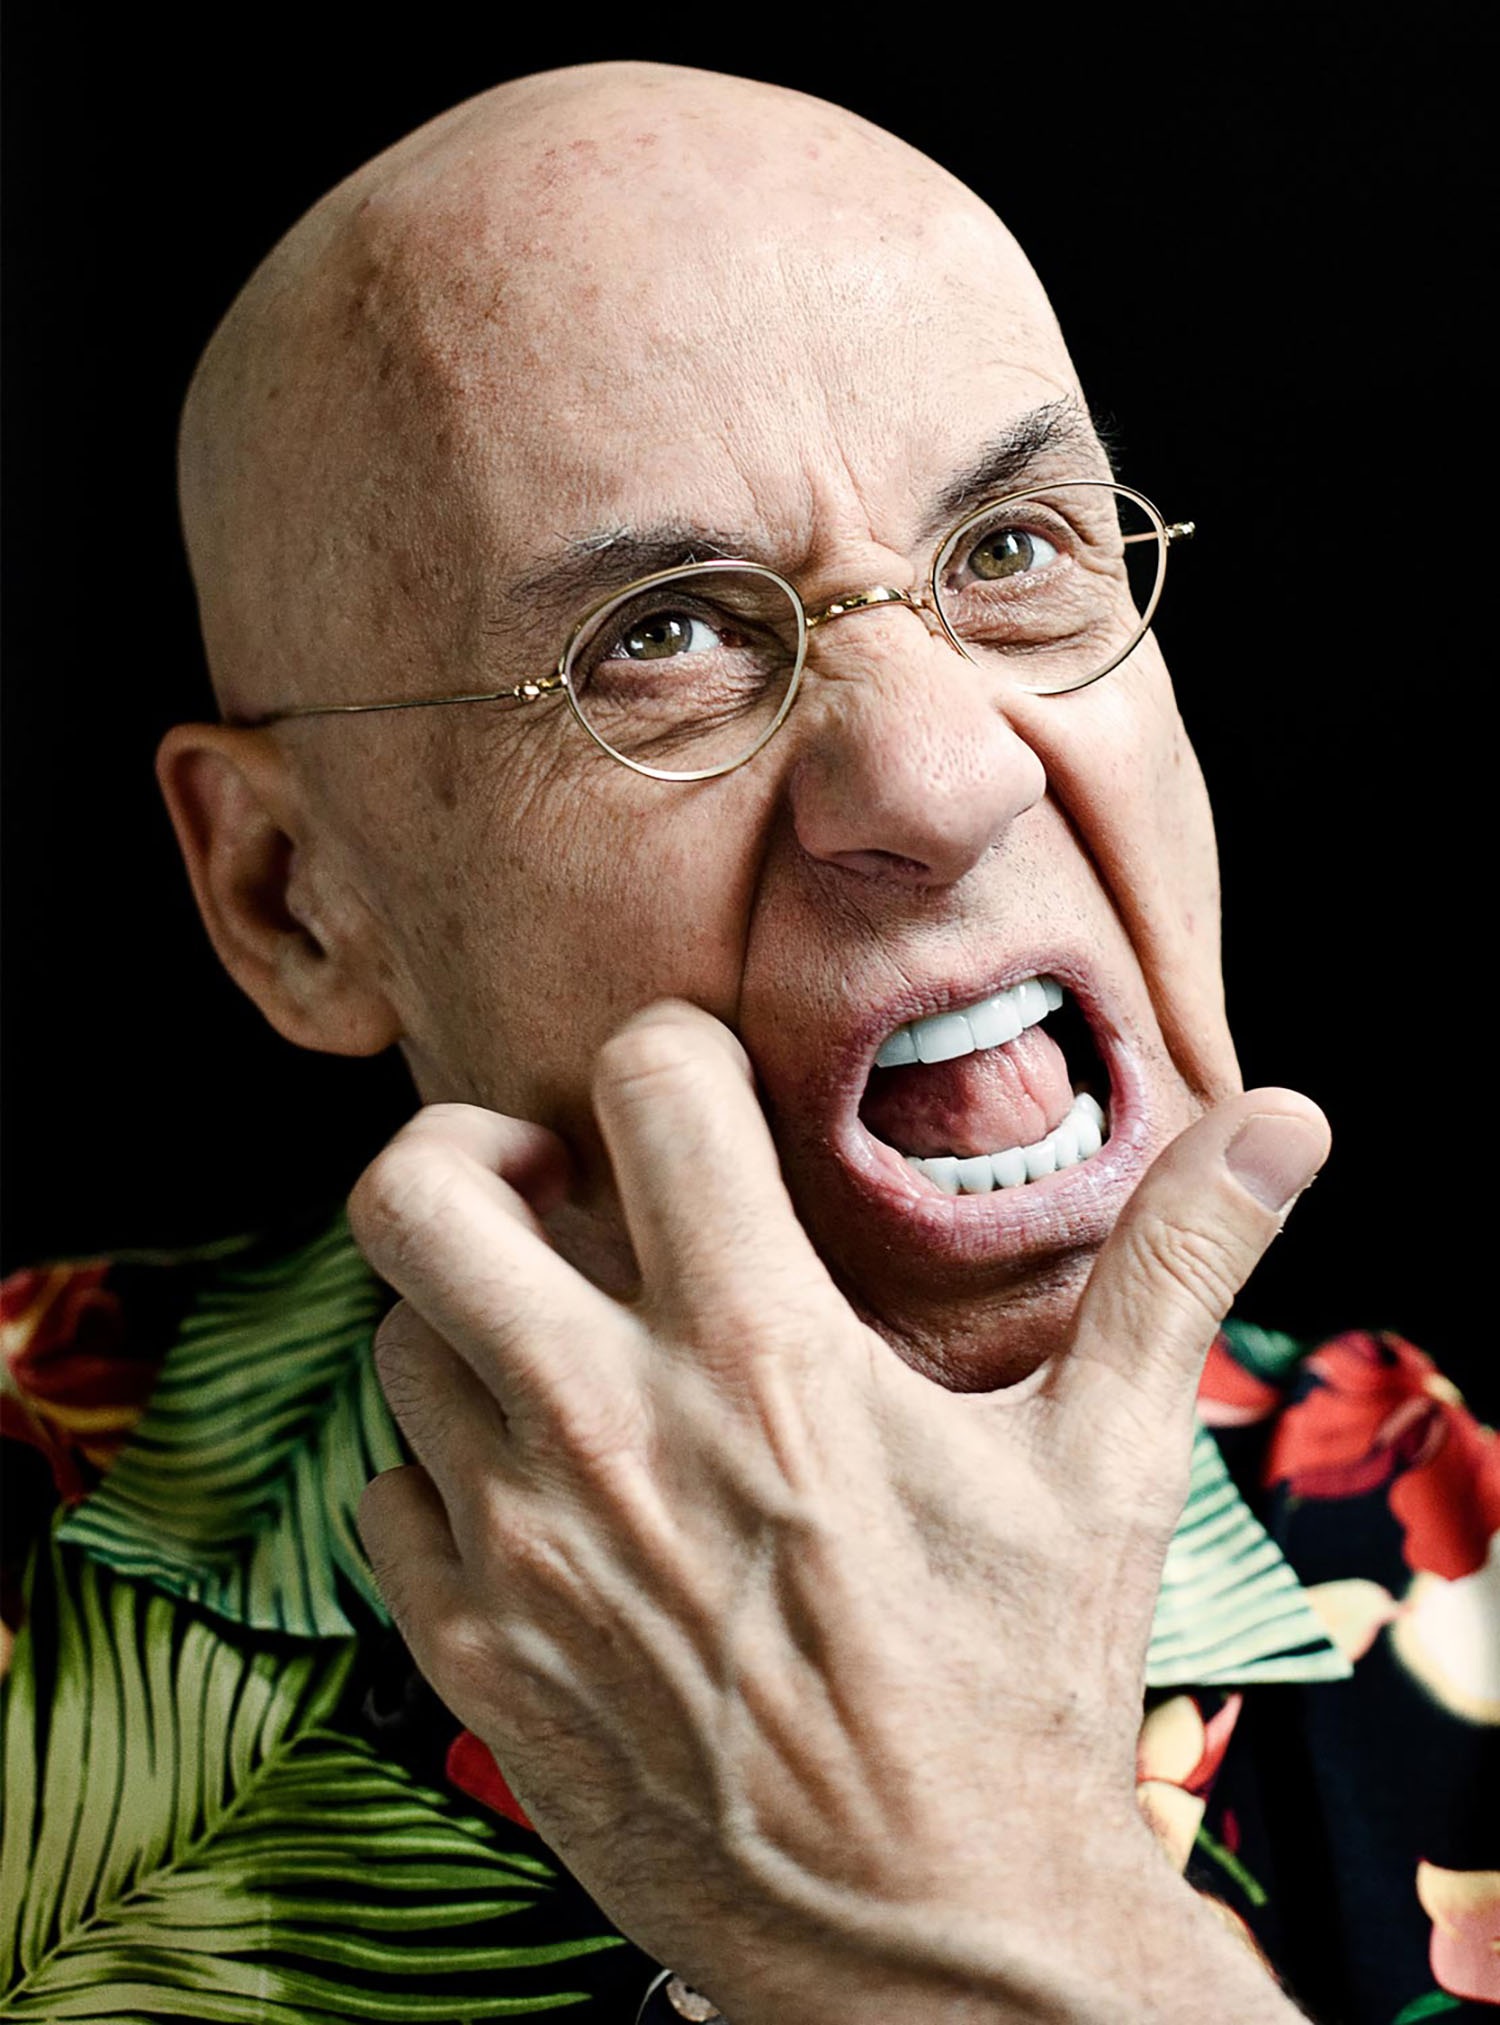 James Ellroy, Writer, Los Angeles, California, 2010